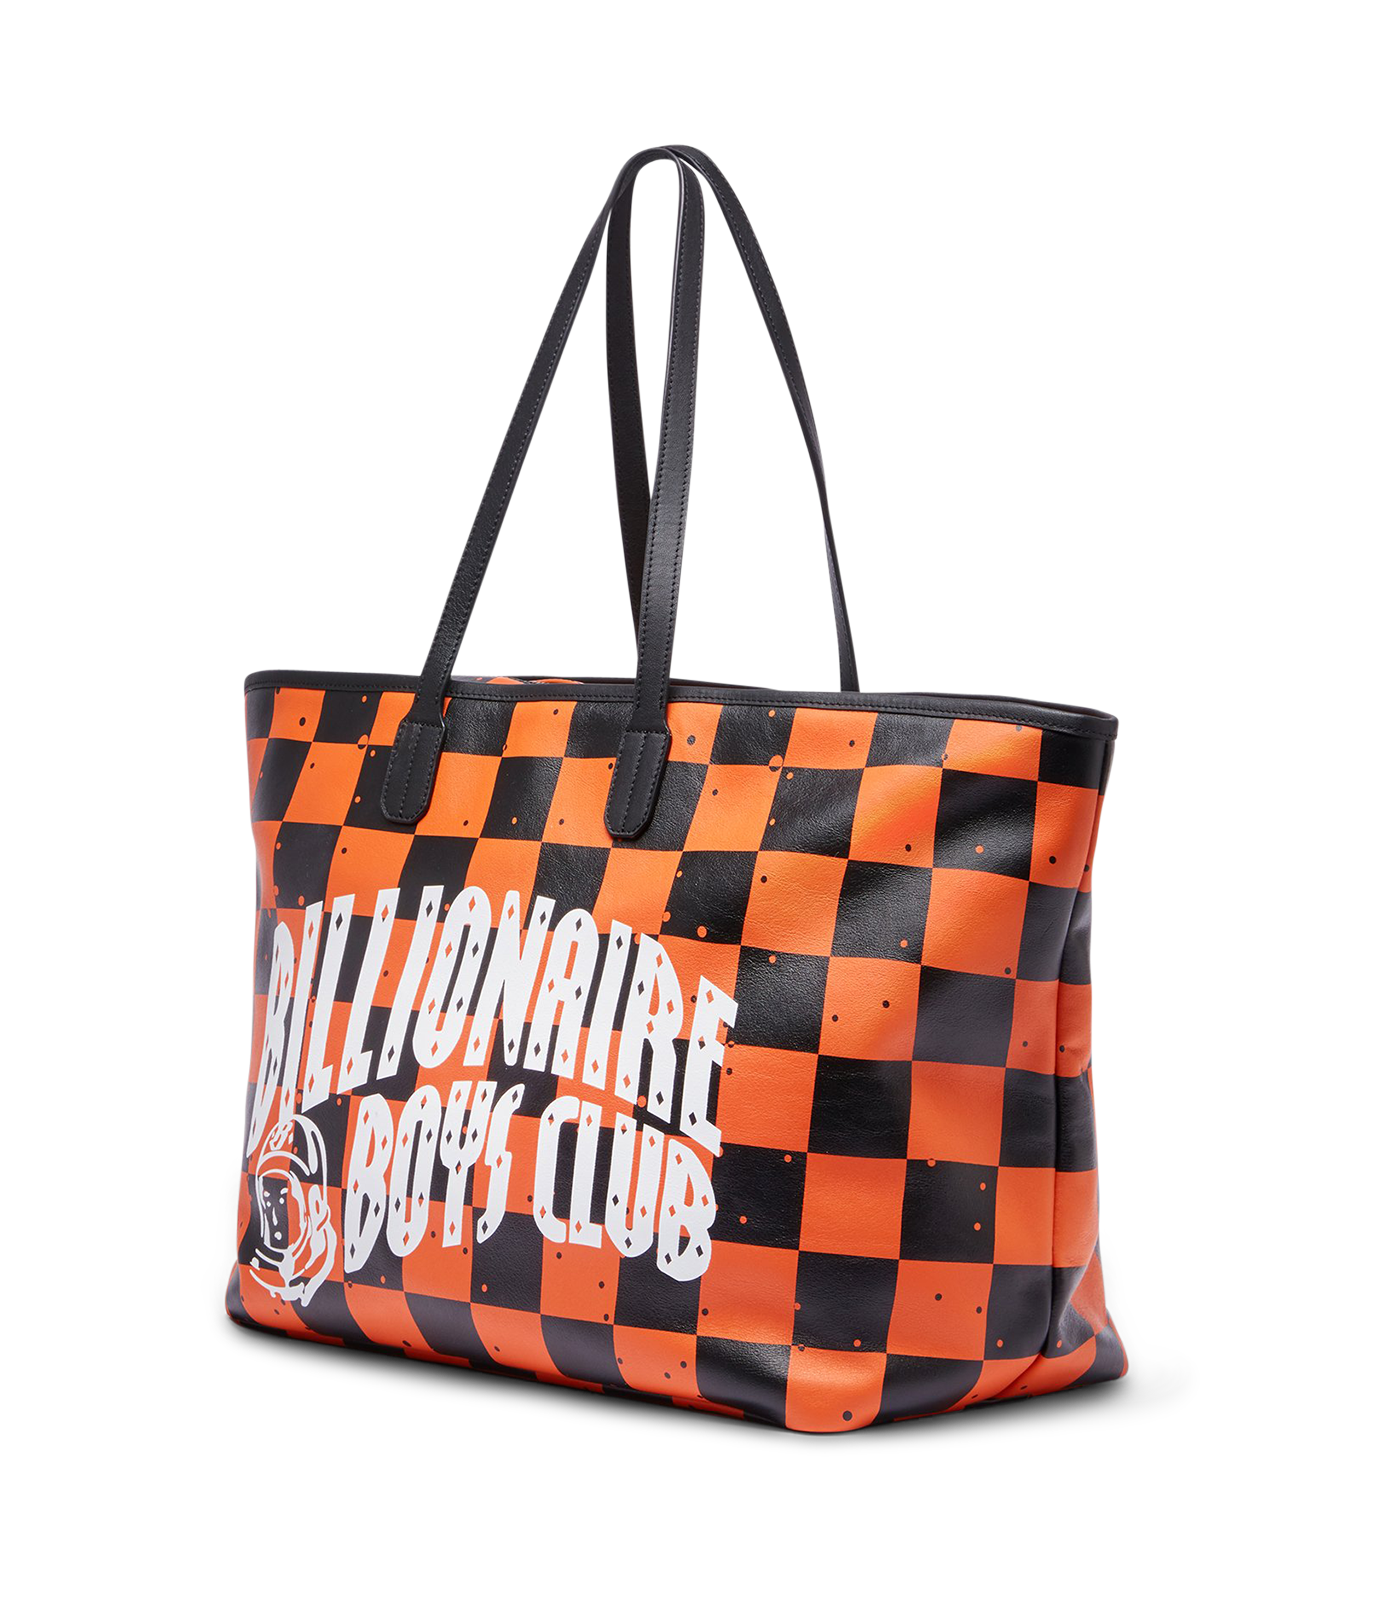 SPACE CHECK LEATHER TOTE BAG - ORANGE